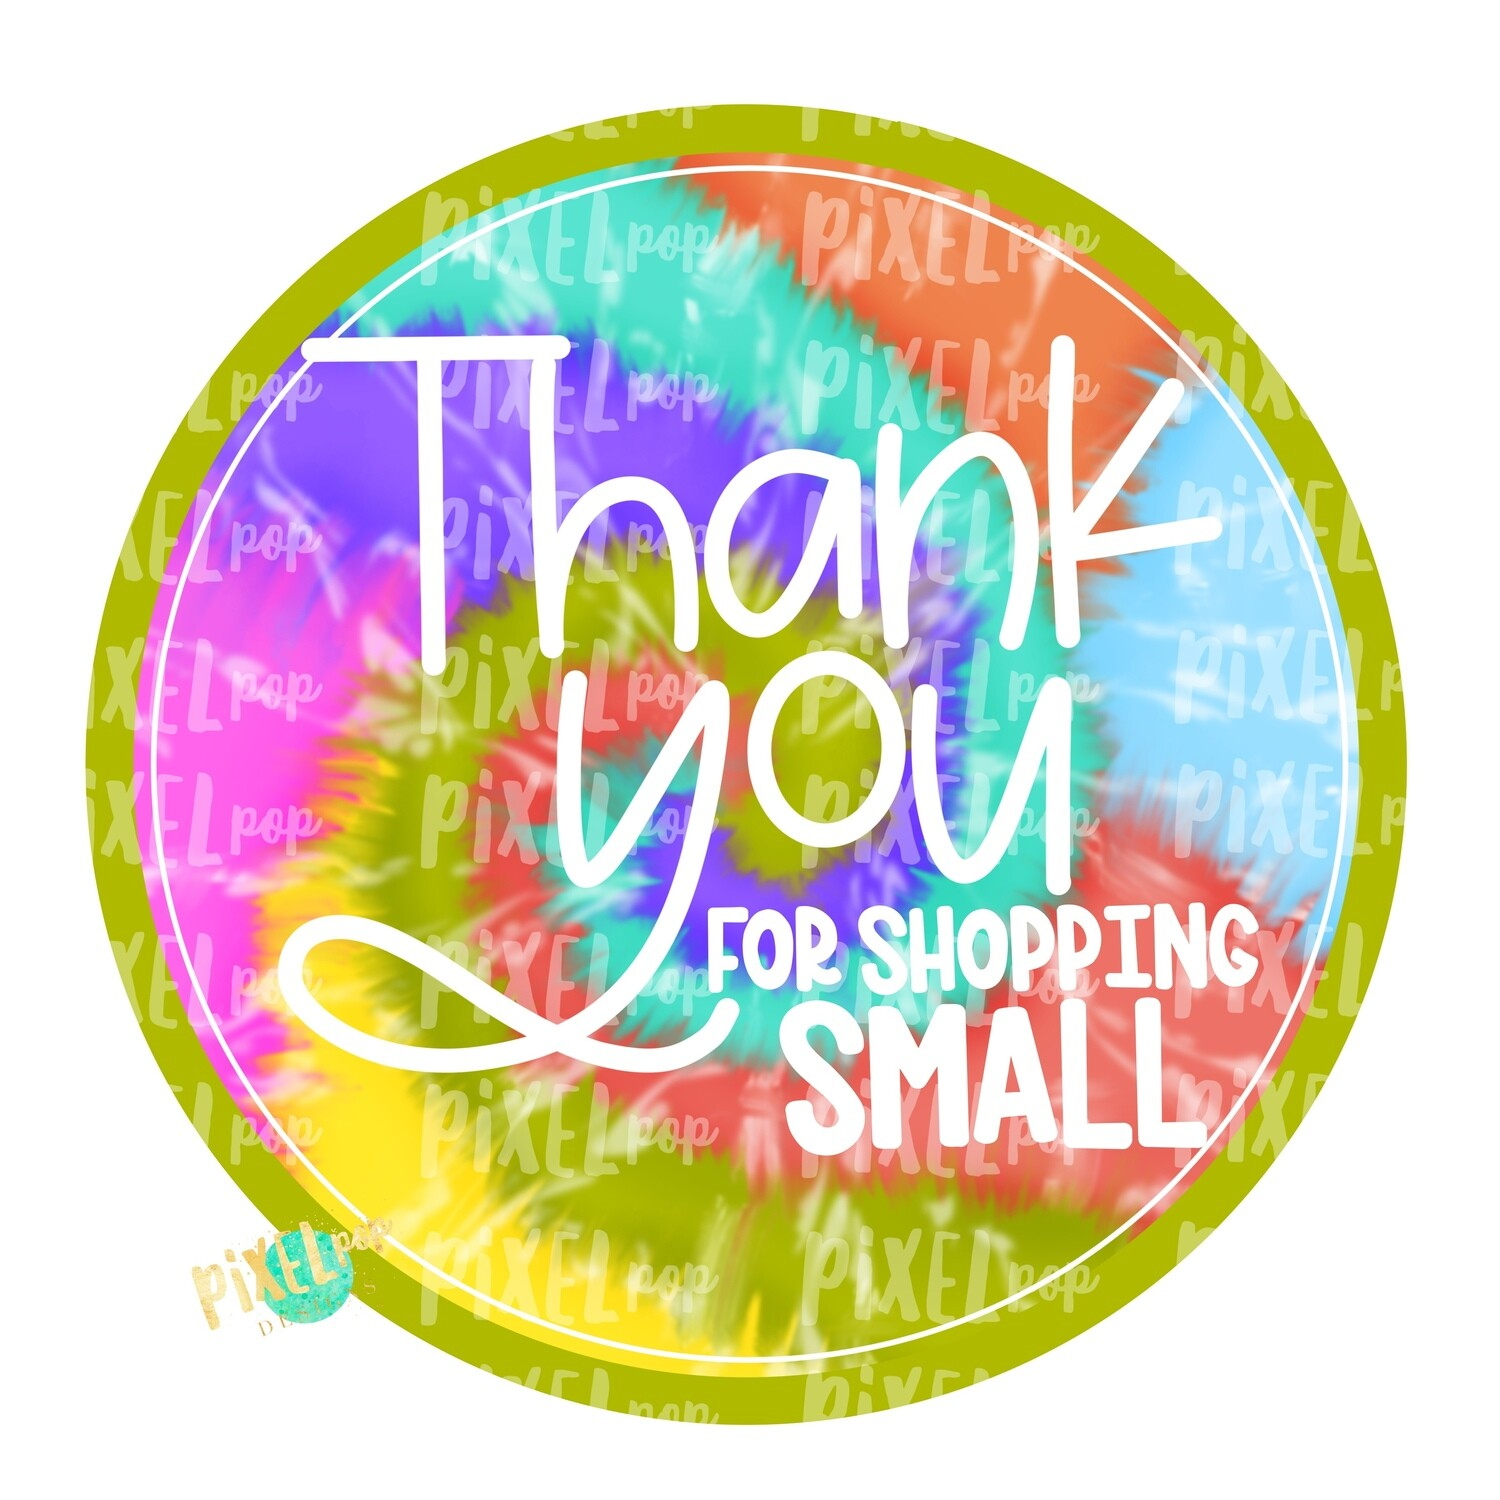 Thank You for Shopping Small Circle Tie Dye PNG | Business Clip | Small Business Marketing Image | Small Business Sticker Art | Business Art